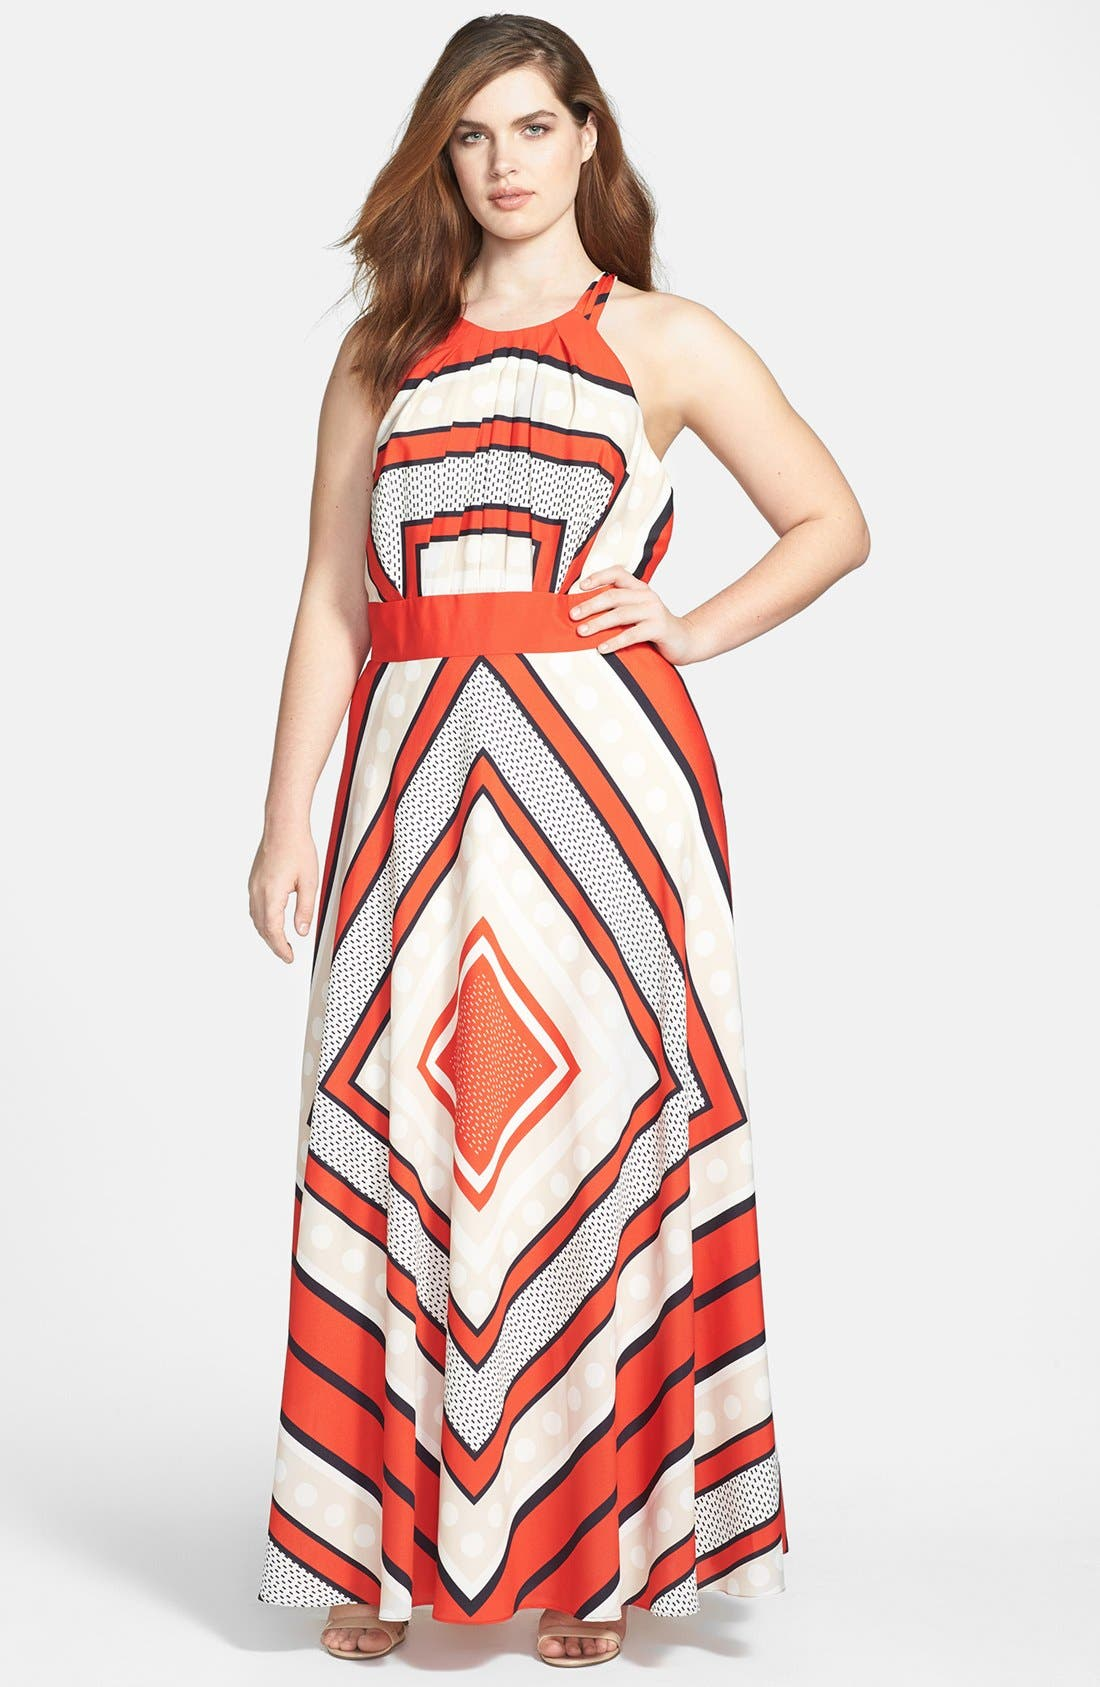 Added dimensions plus size red dress